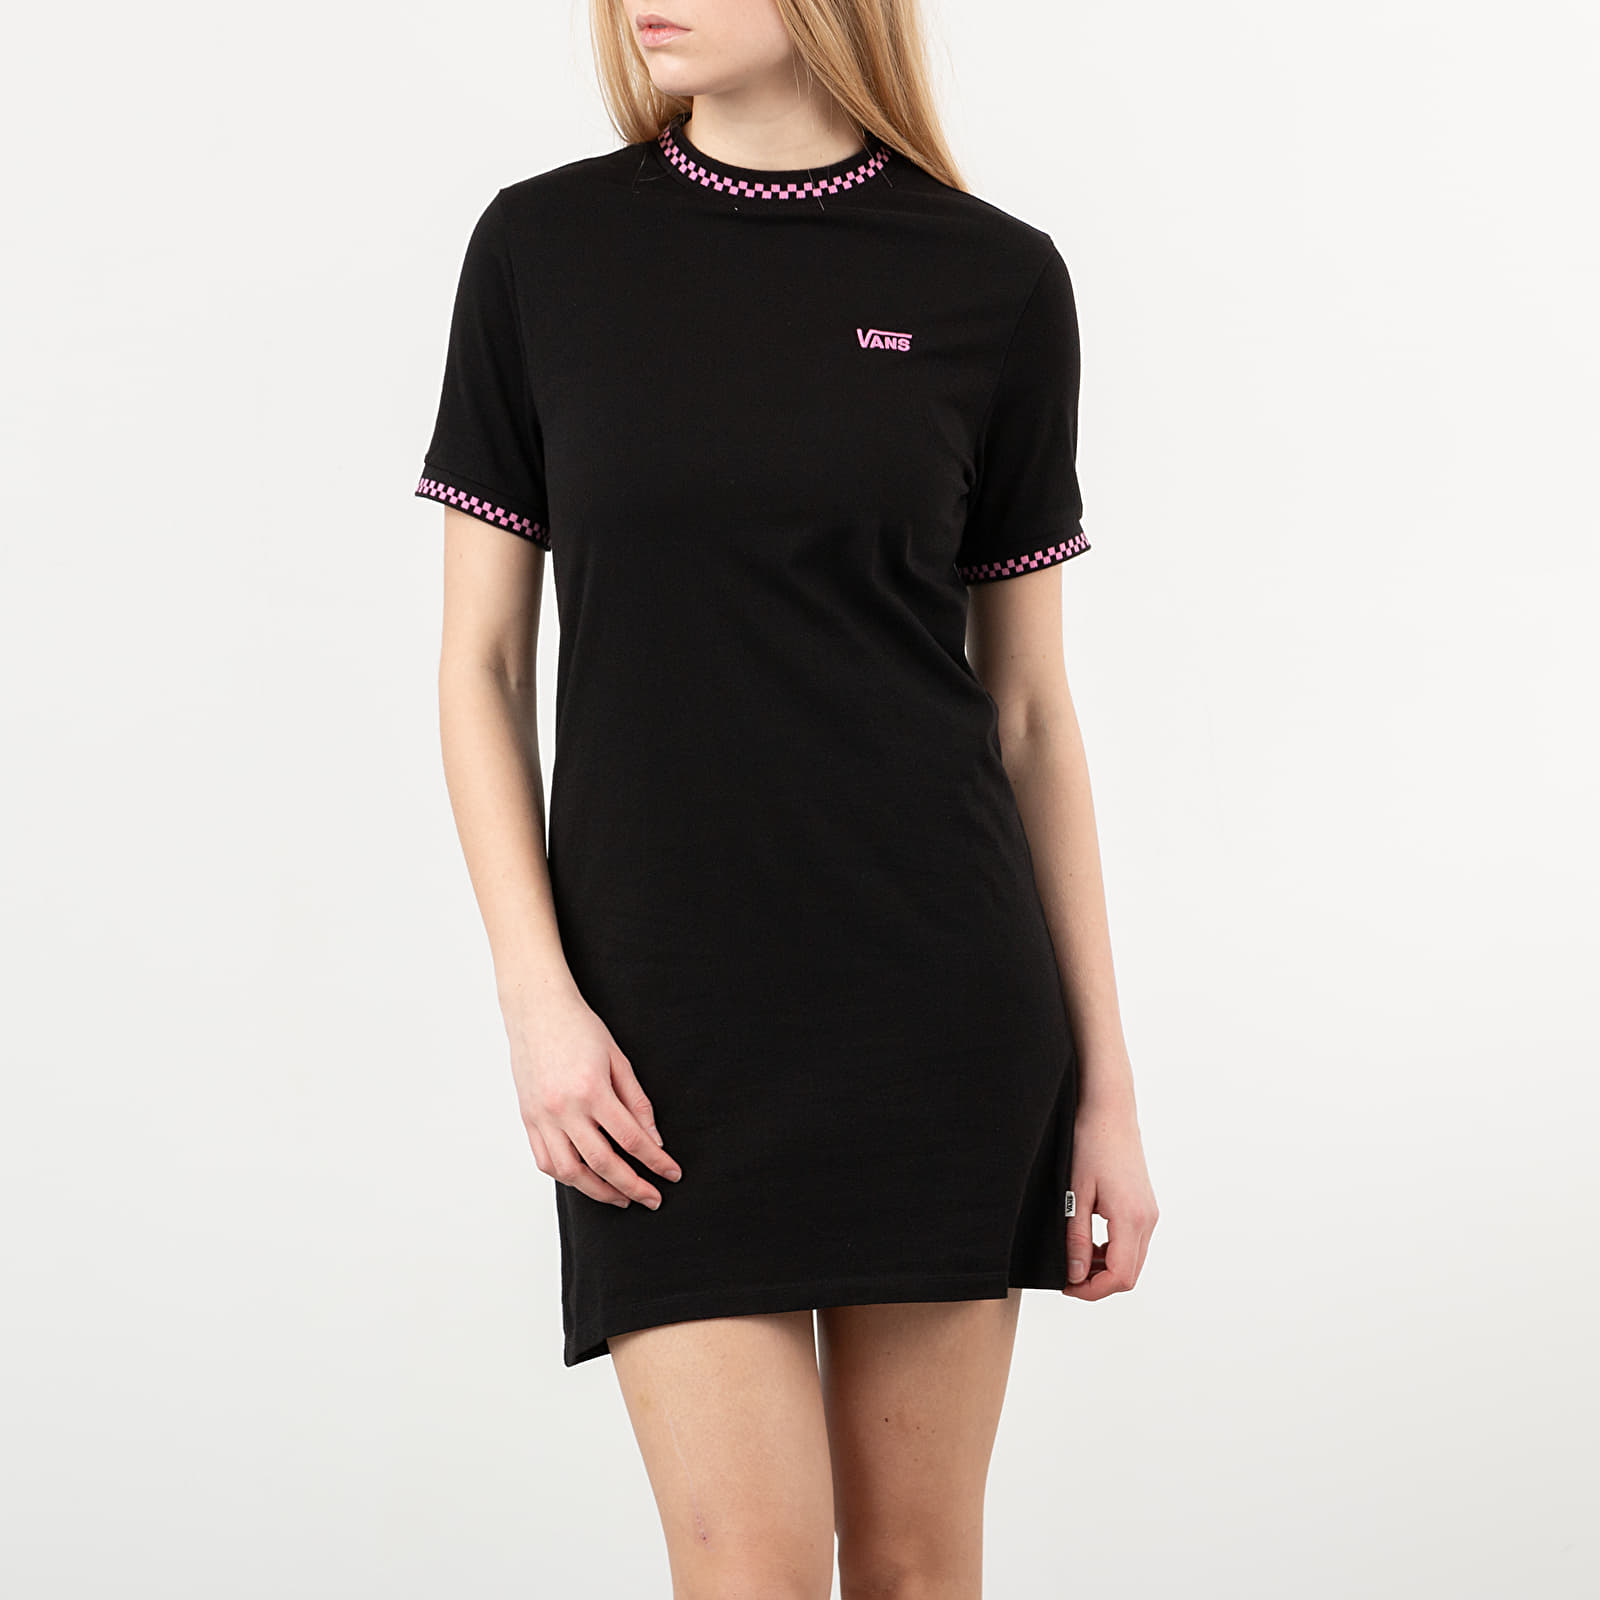 Vans All Stakes Dress